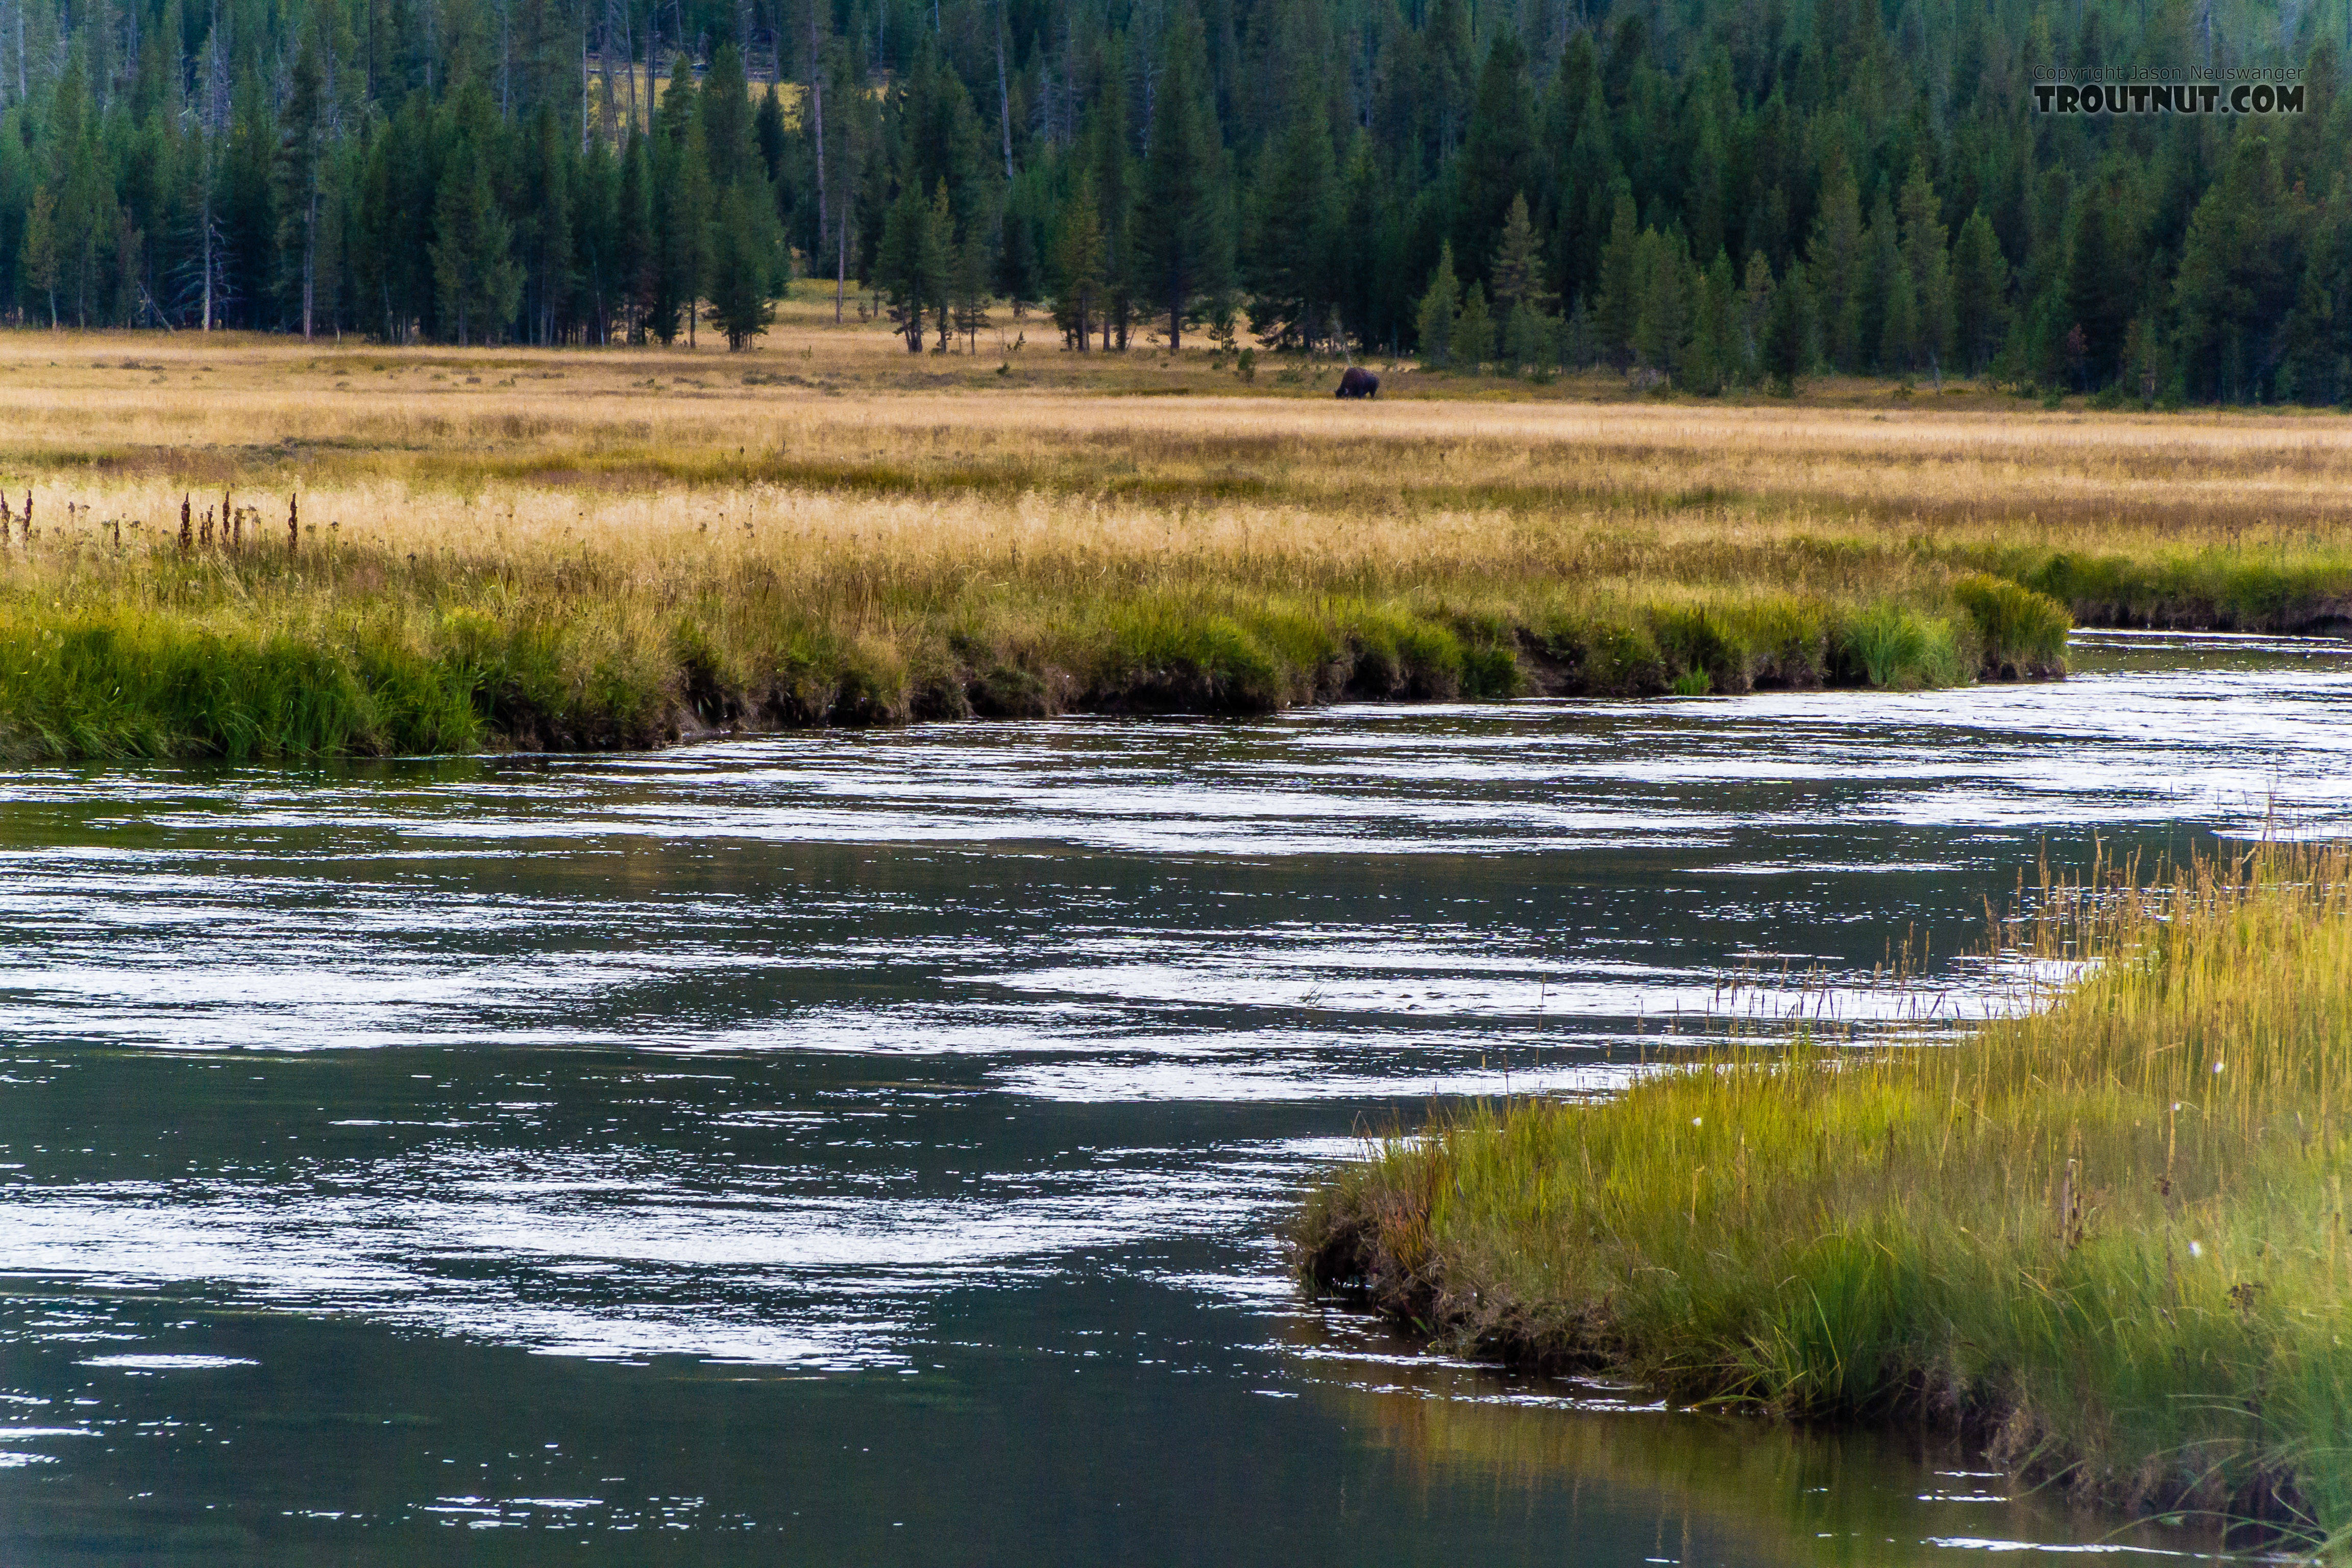 A lone bison feeds in the background across a meadow reach of the Gibbon River. From the Gibbon River in Wyoming.